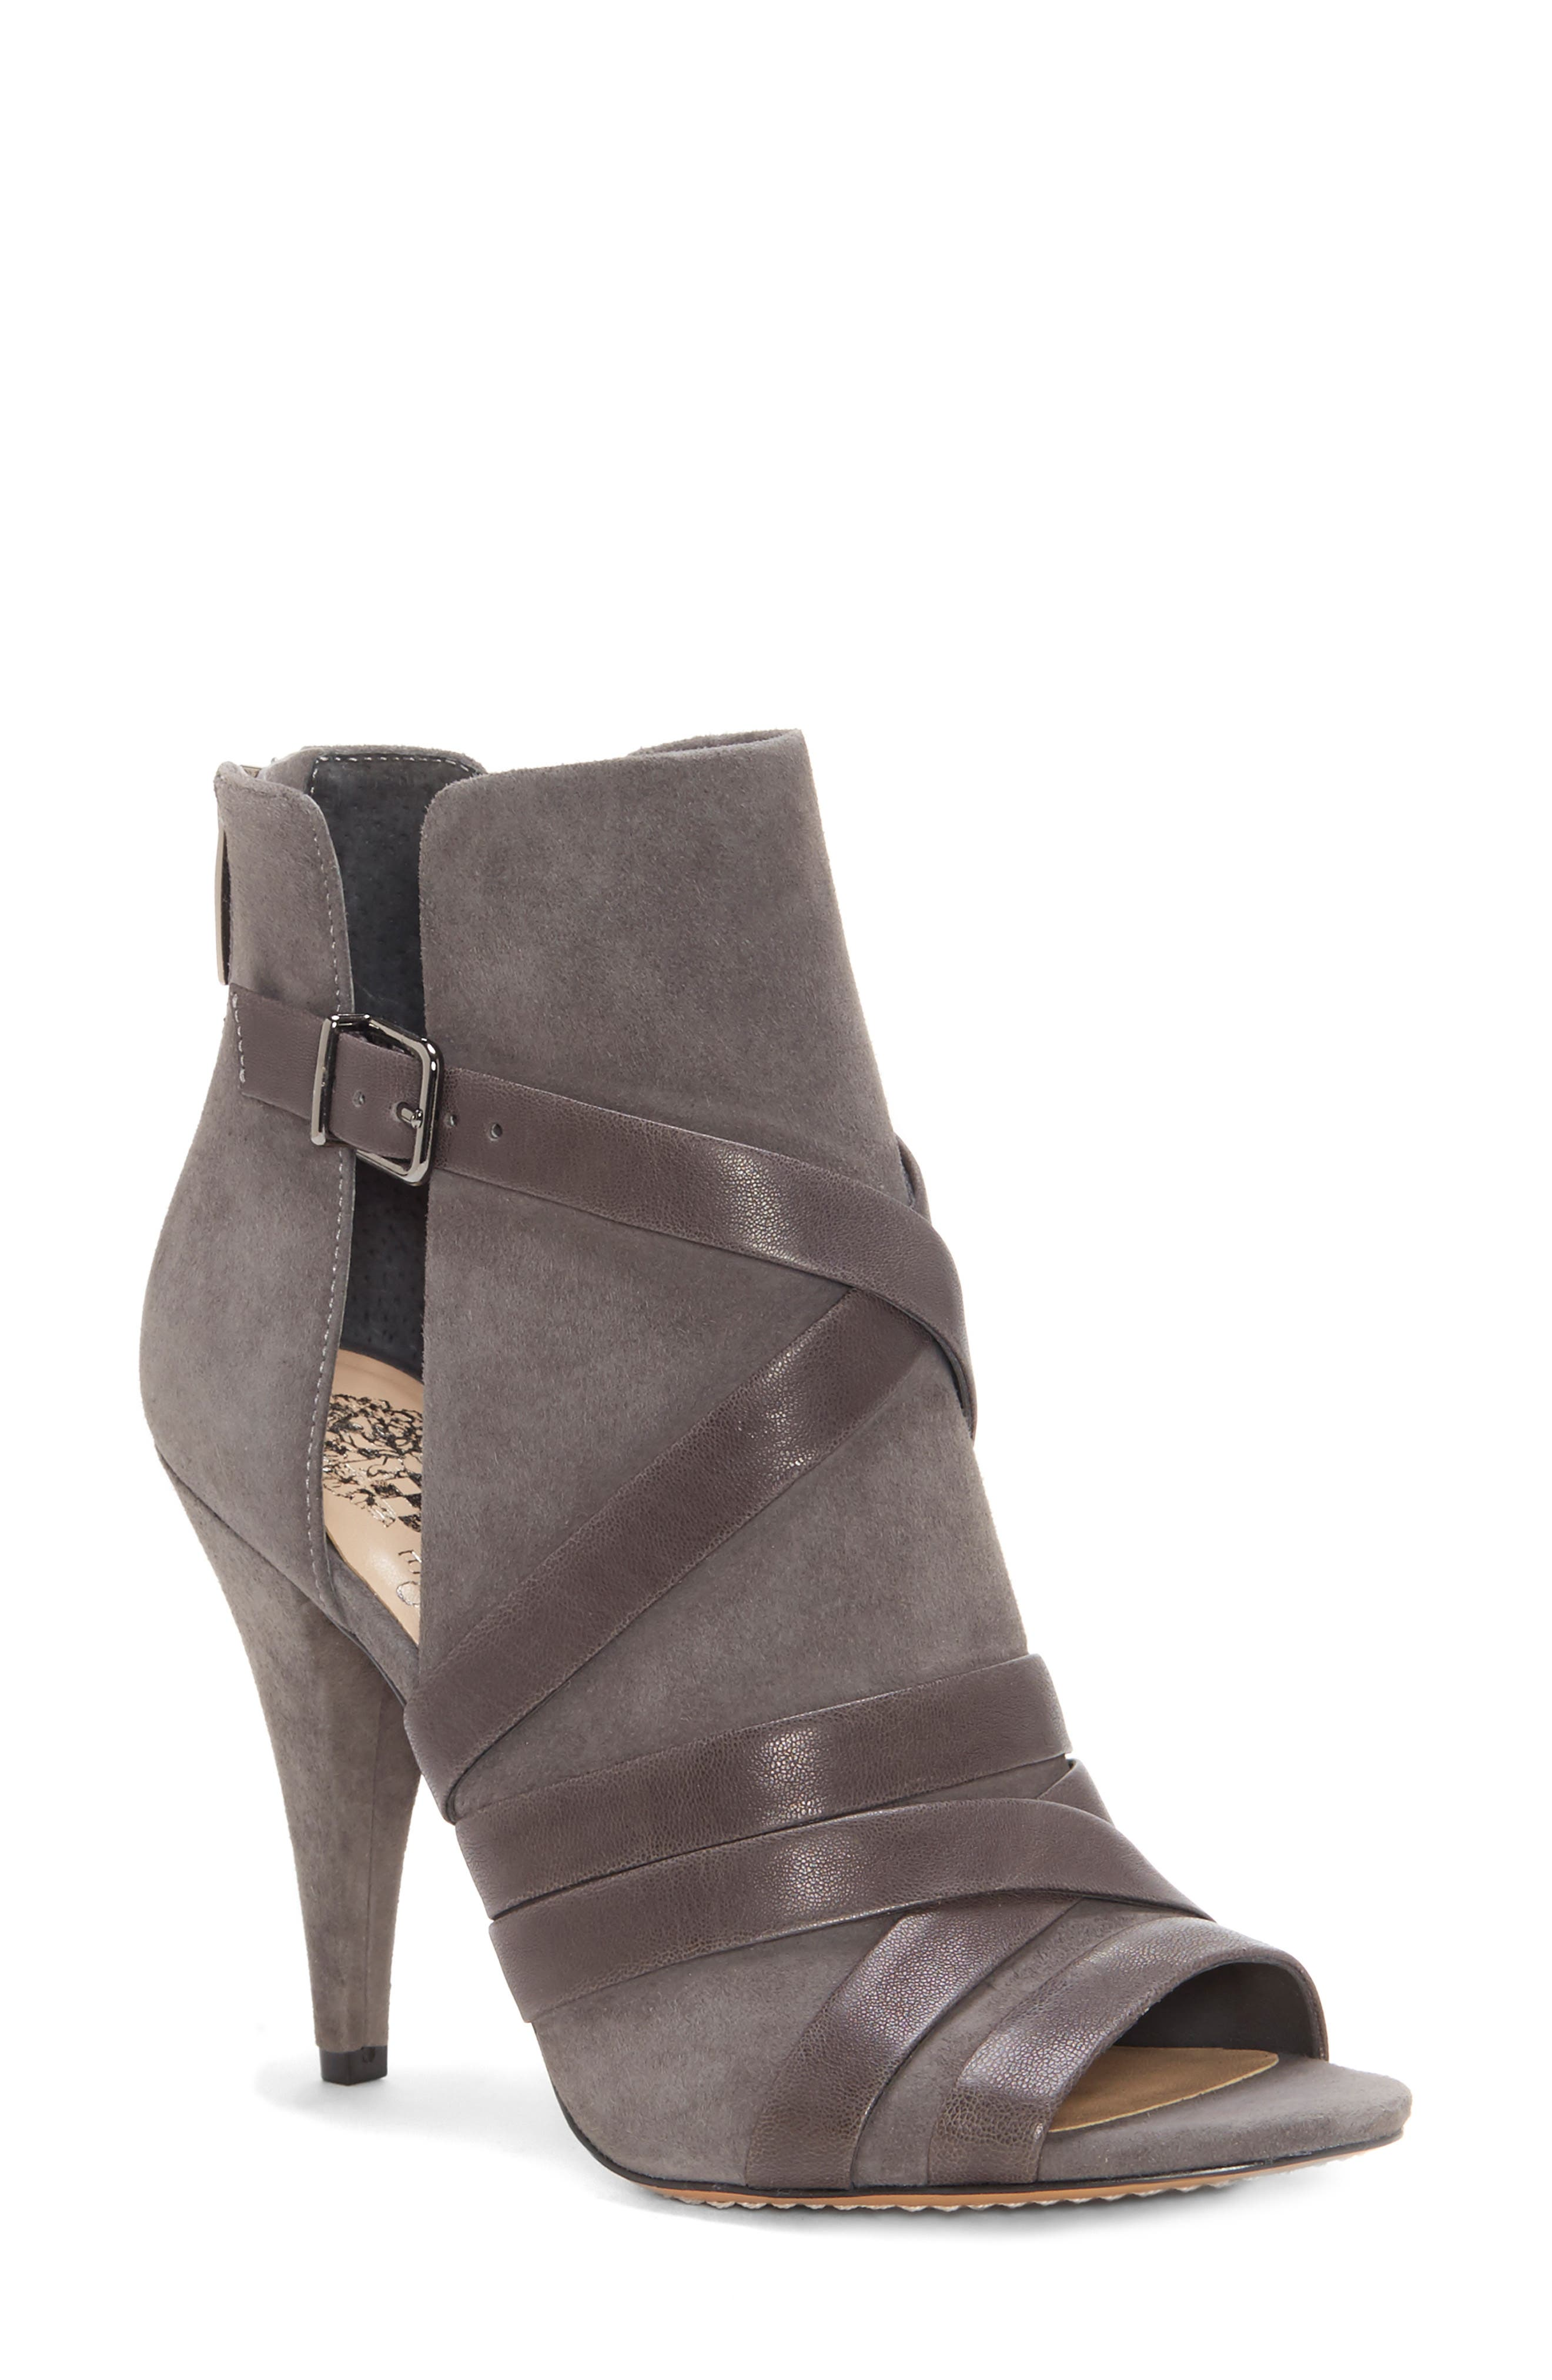 Vince Camuto Achika Belted Peep Toe Bootie